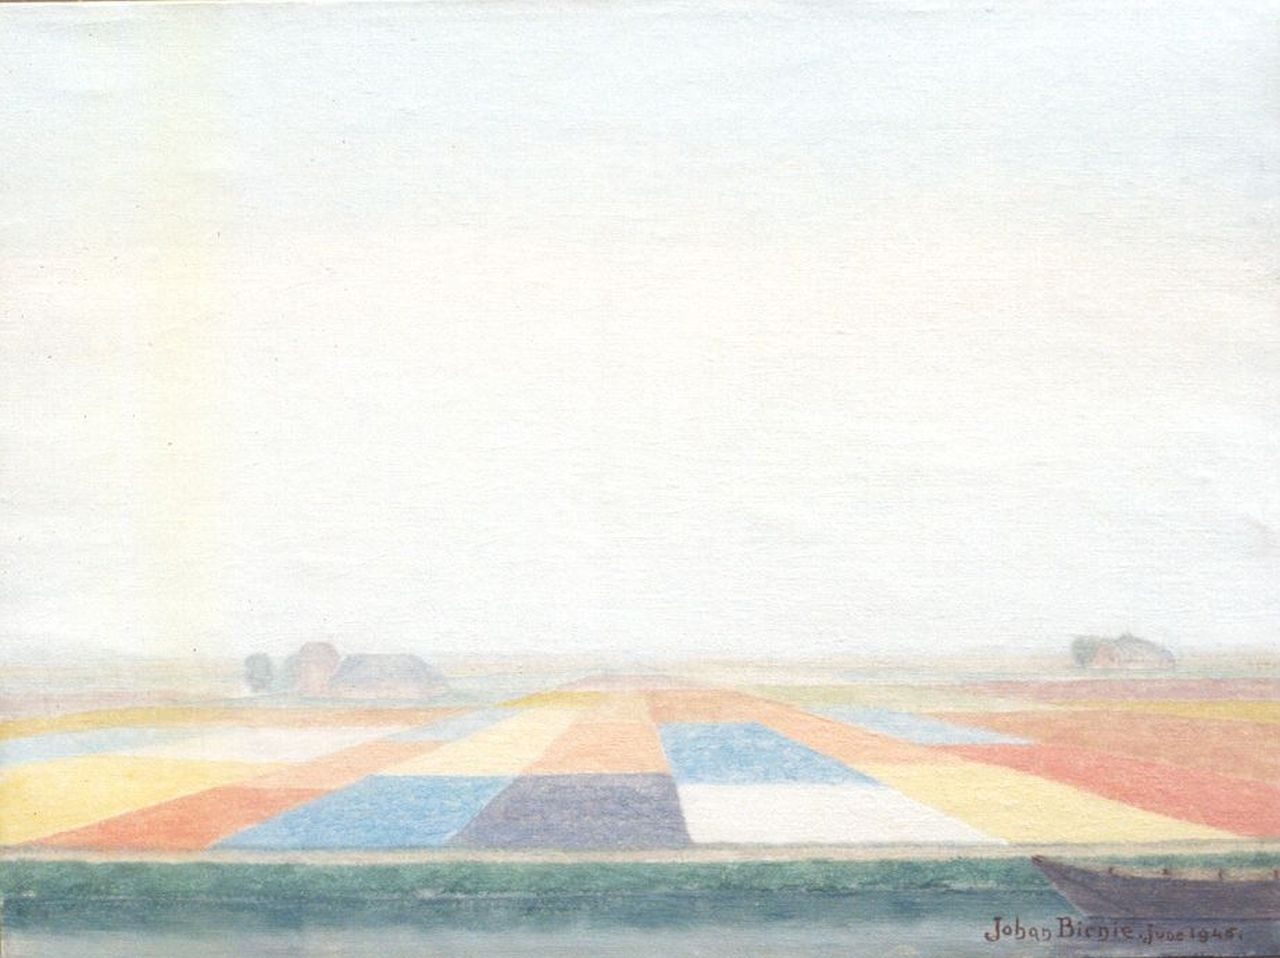 Birnie J.  | Johan Birnie, Bulb fields, oil on canvas 30.5 x 40.7 cm, signed l.r. and painted June 1945